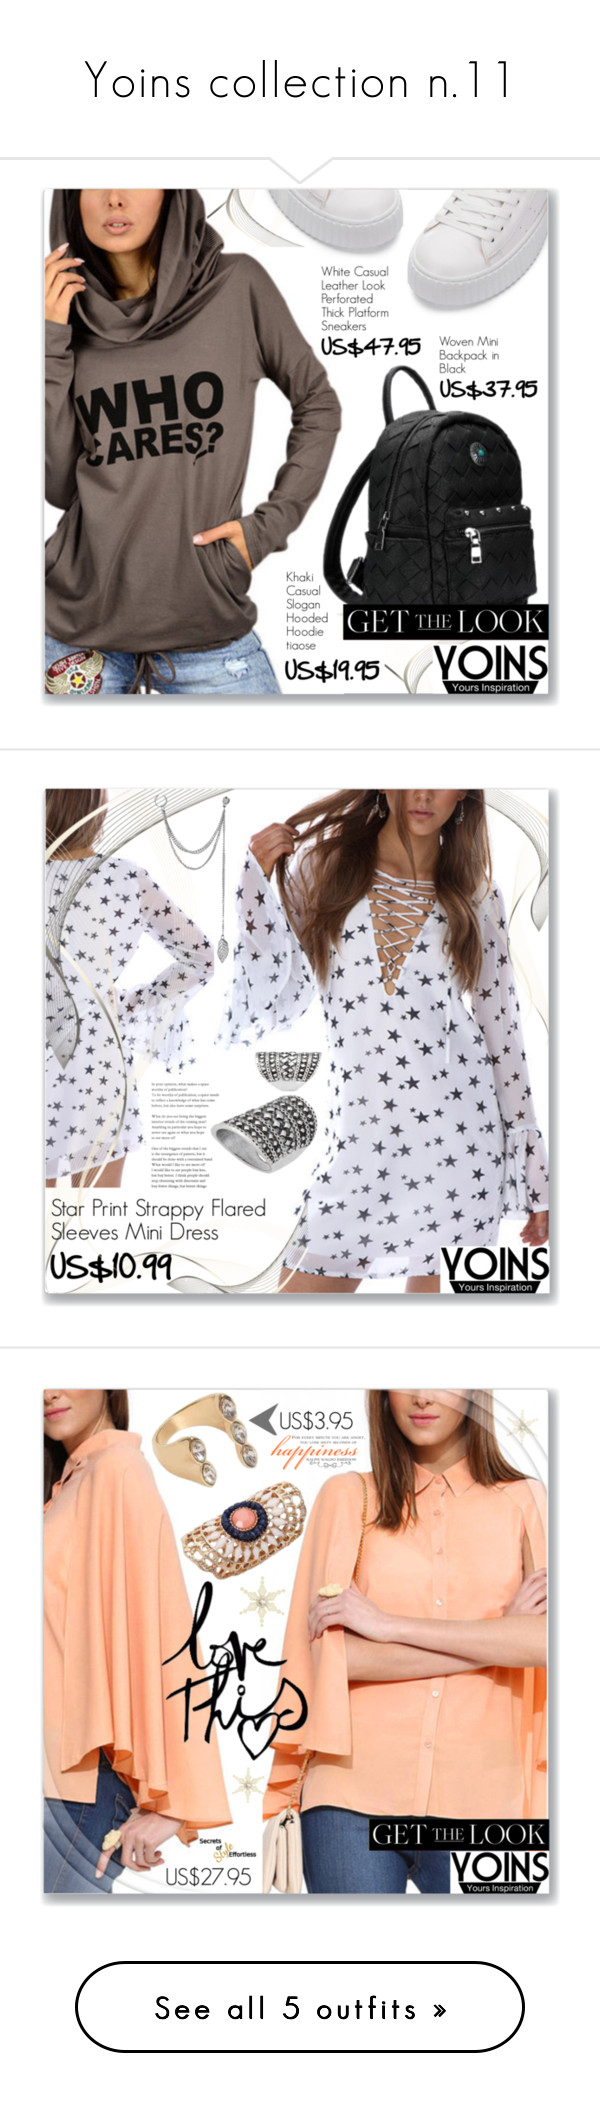 """Yoins collection n.11"" by dressedbyrose ❤ liked on Polyvore featuring yoins, yoinscollection, loveyoins, vintage, Chloé, Petit Bateau, The Row, Lizzy James and Chan Luu"